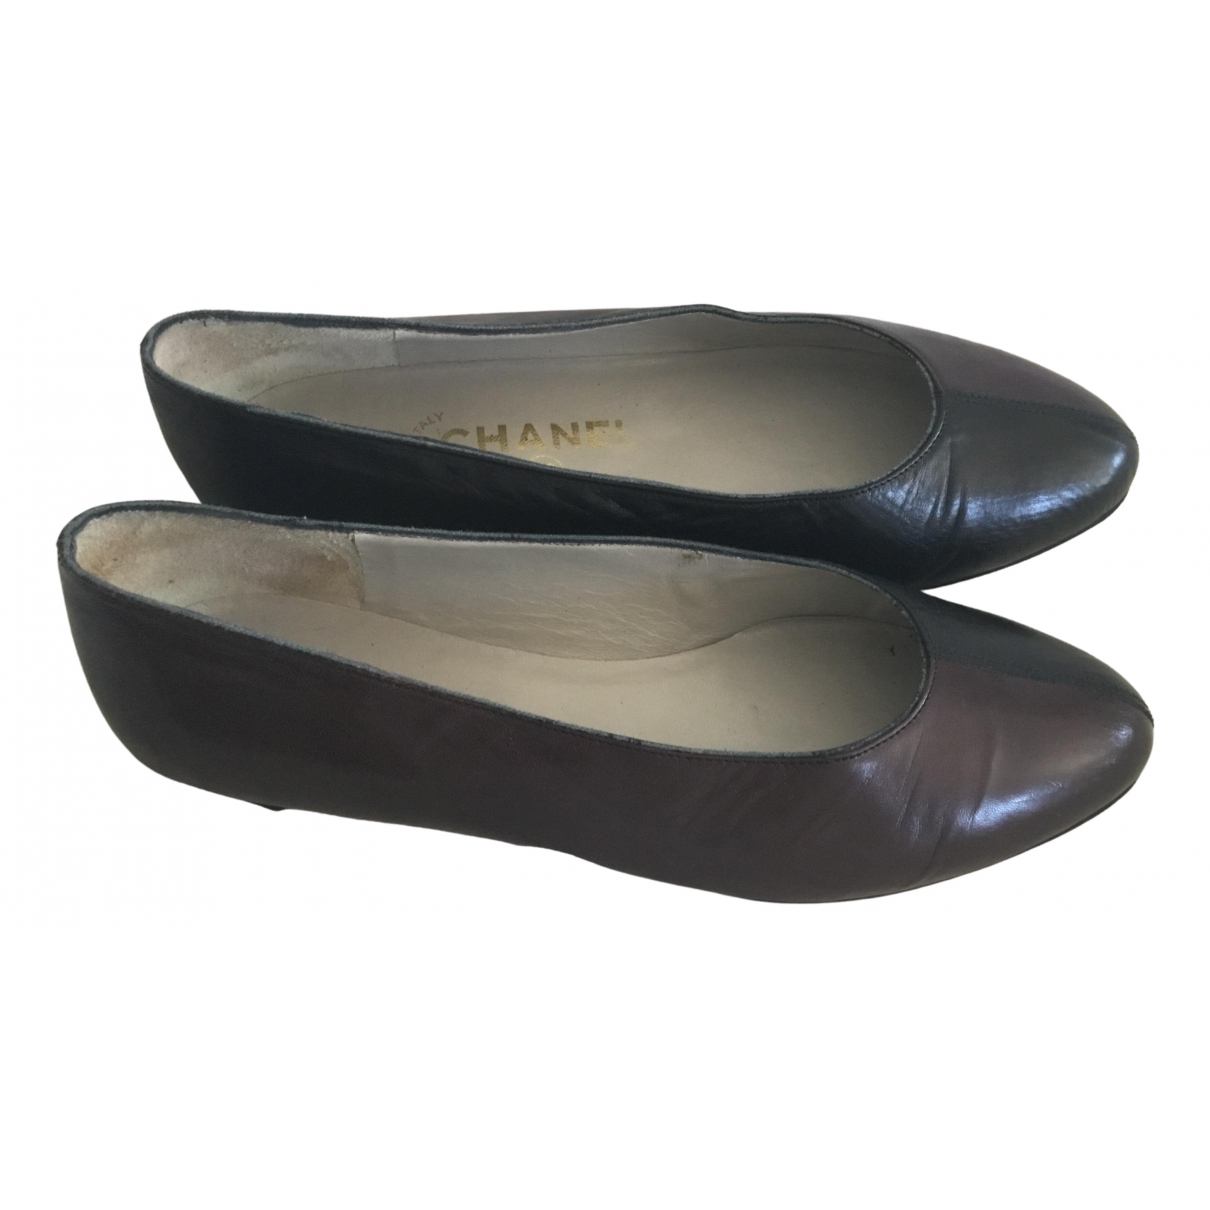 Chanel \N Black Leather Ballet flats for Women 37.5 EU